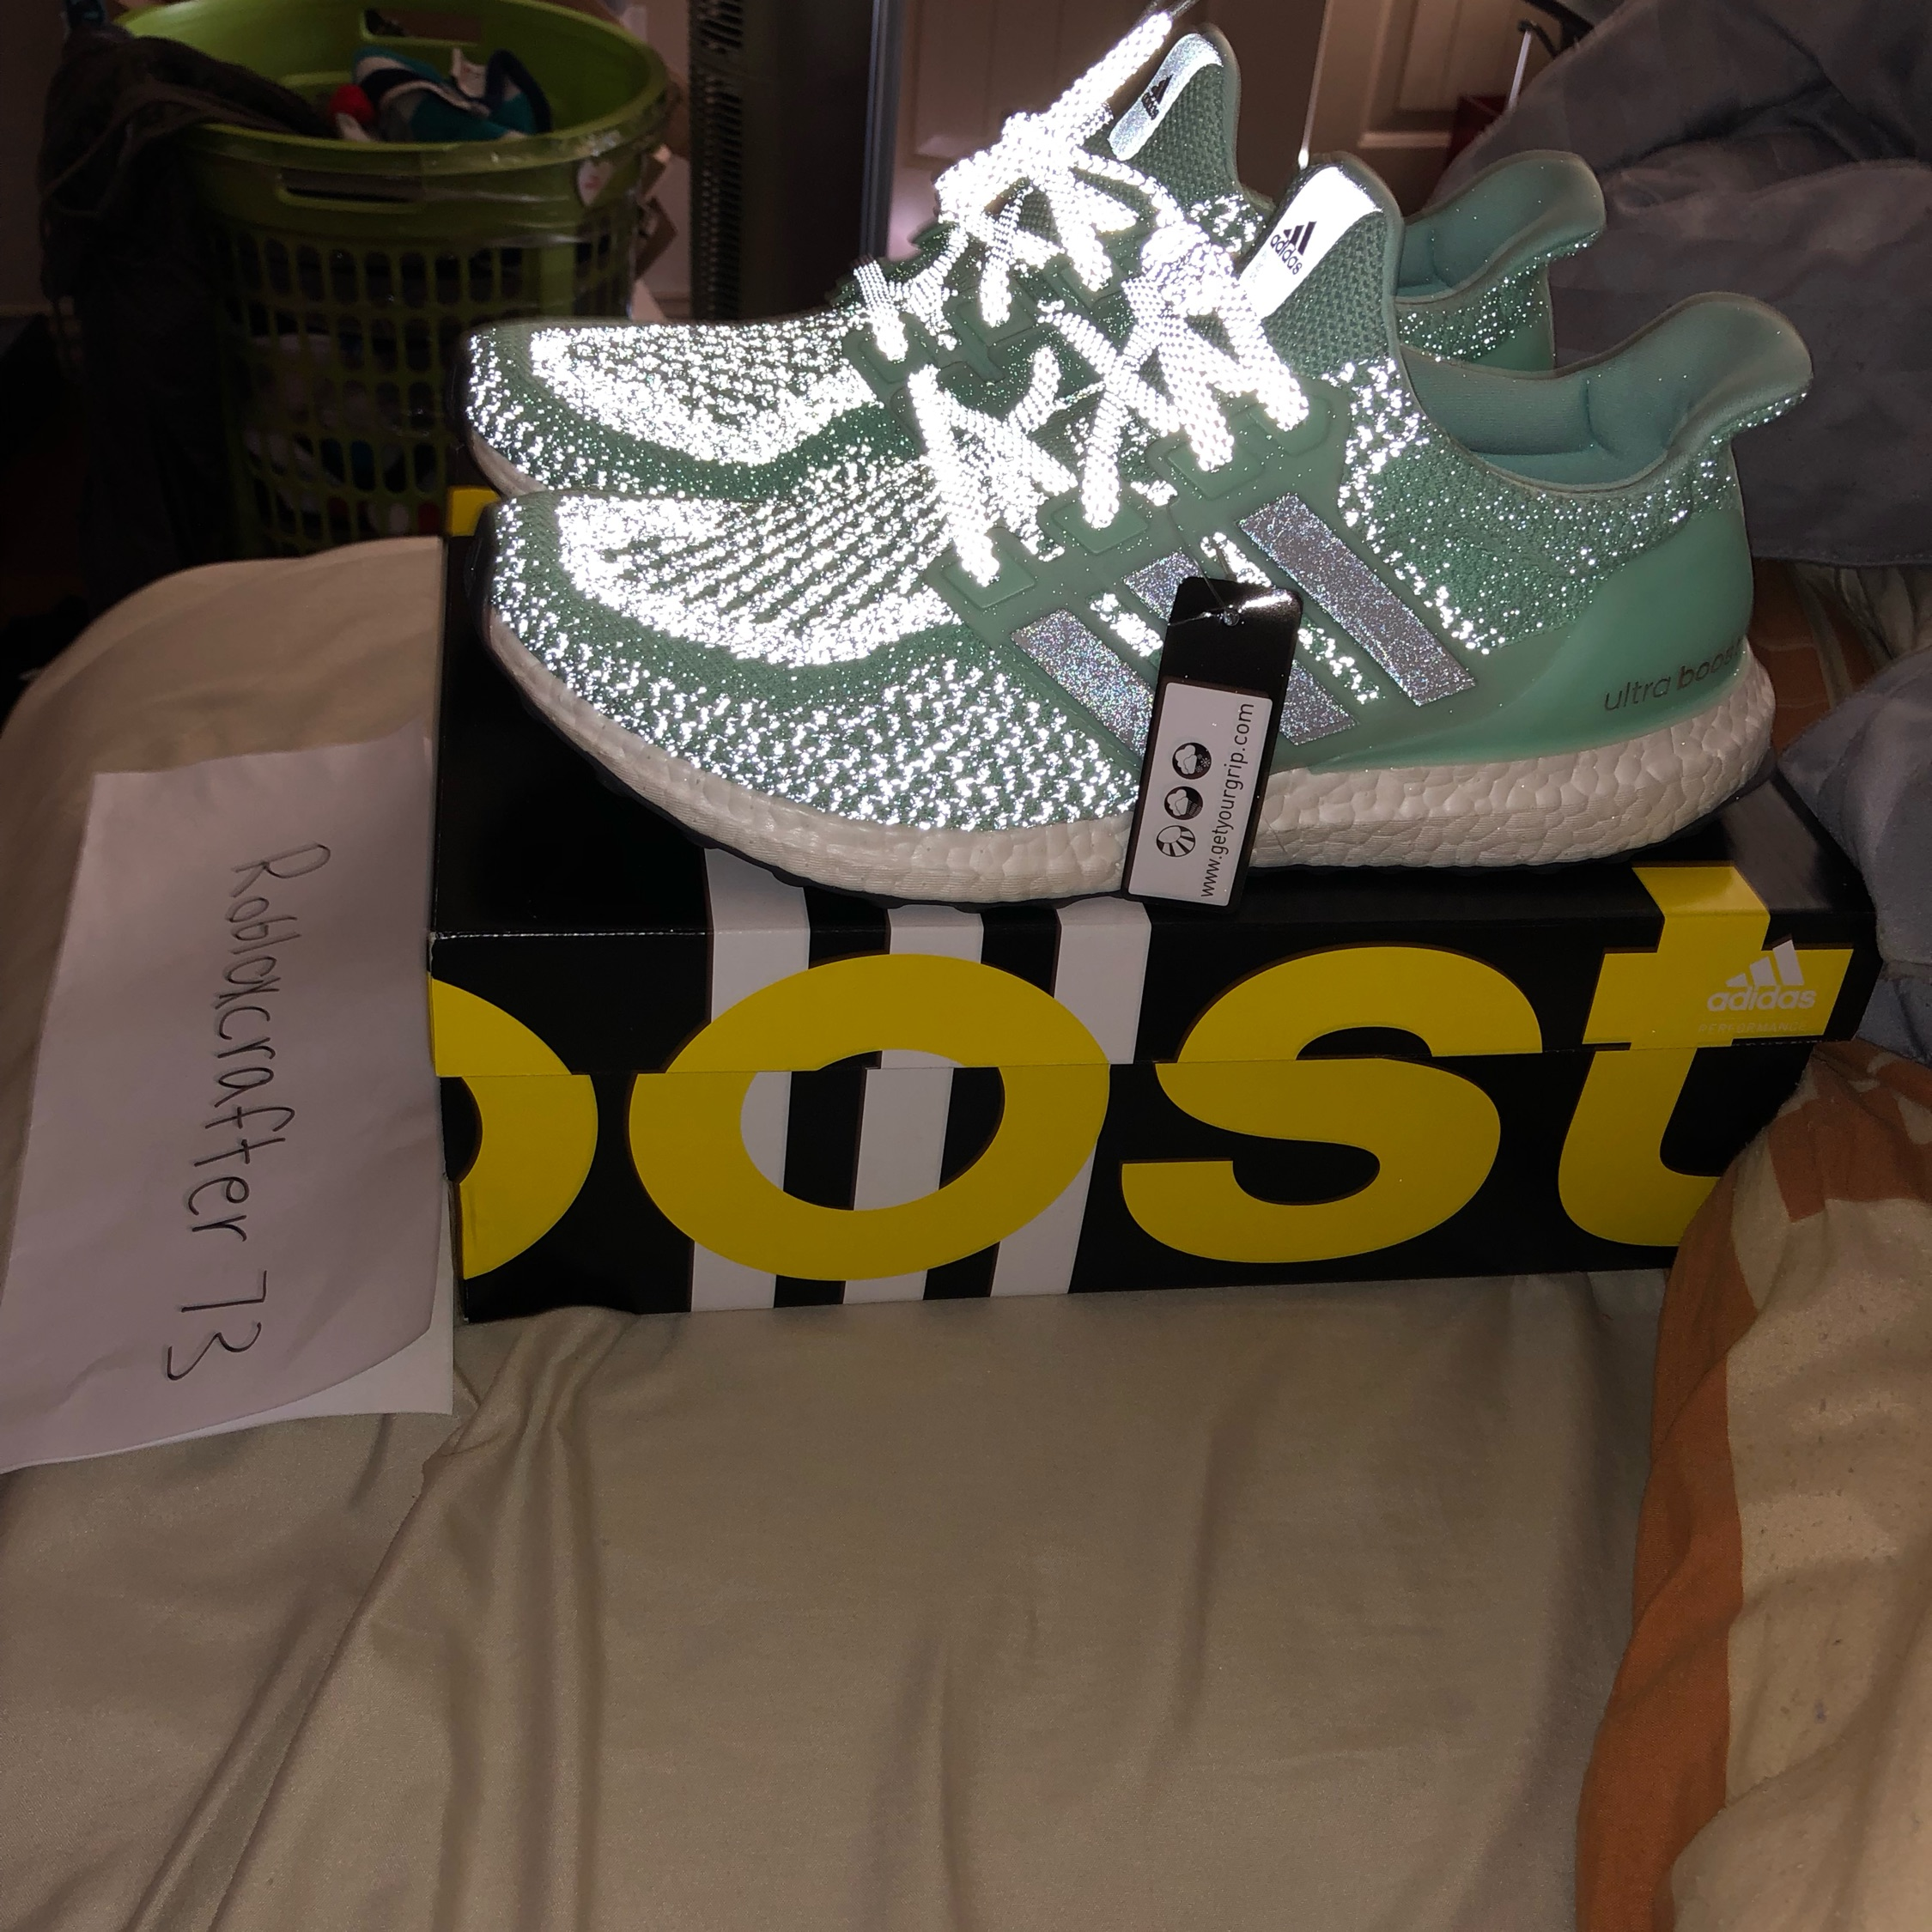 sports shoes 8834d 1bc6c Miadidas Ultraboost Lady Liberty Rare Colorway